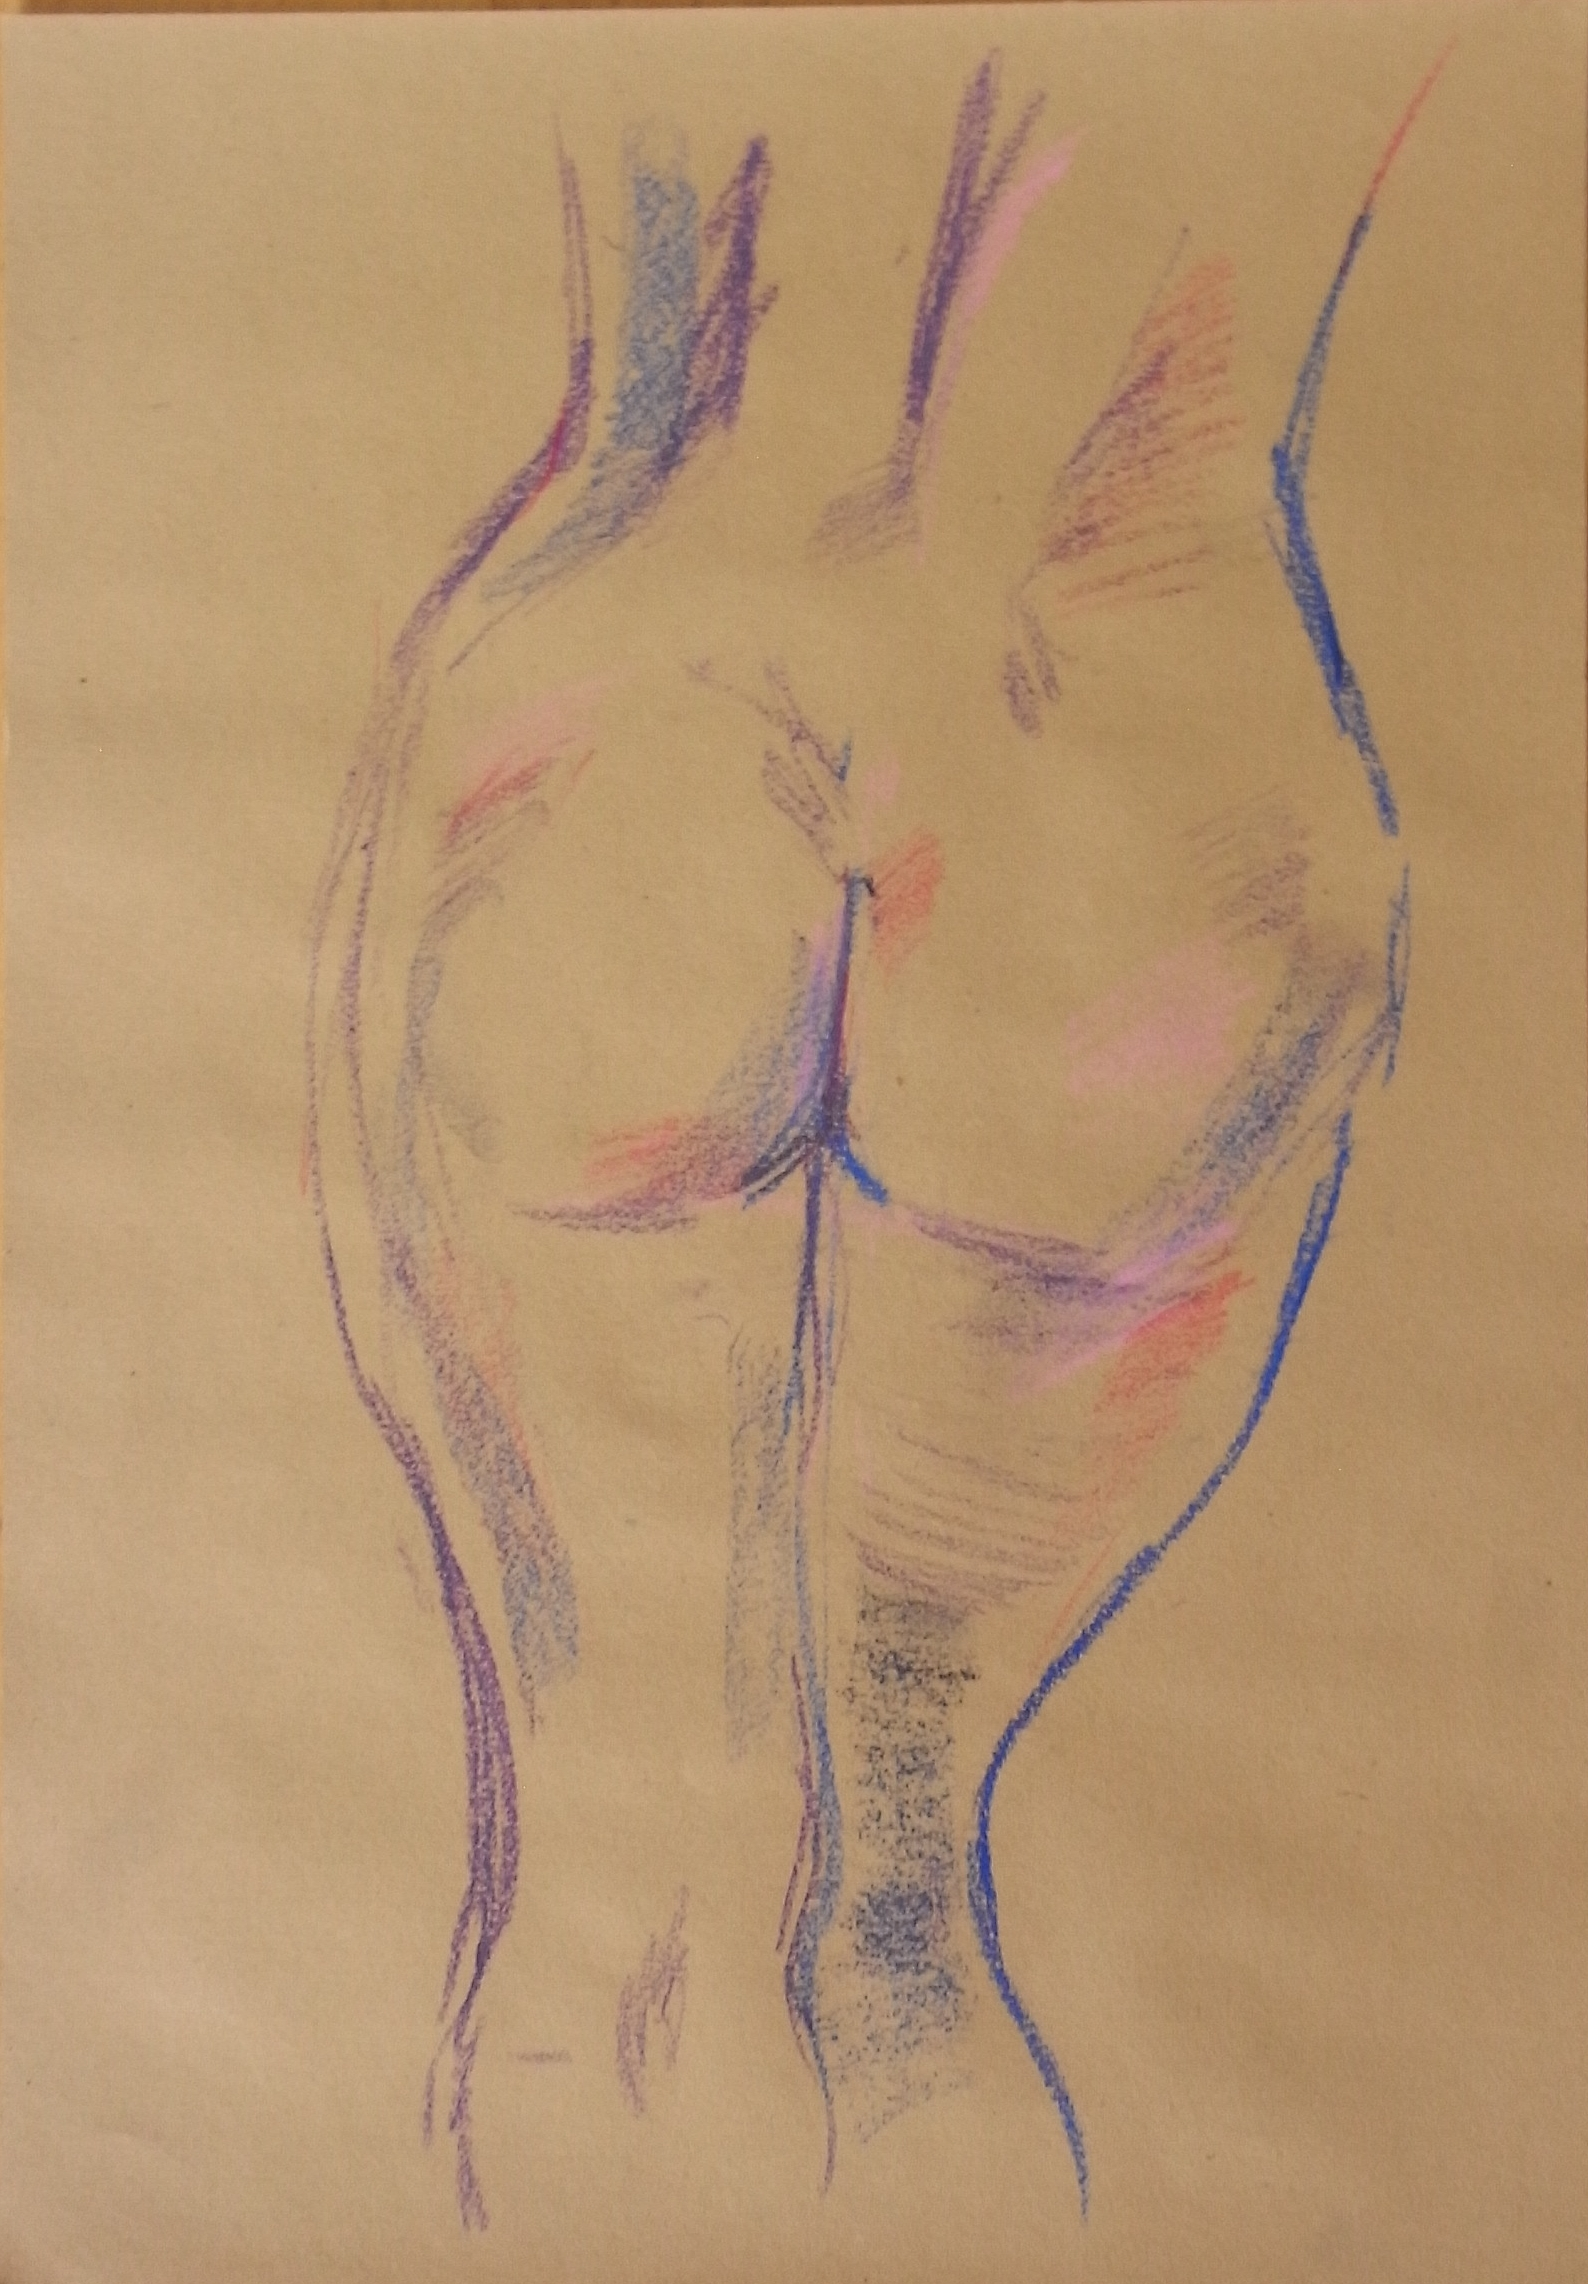 rear view of a woman's torso